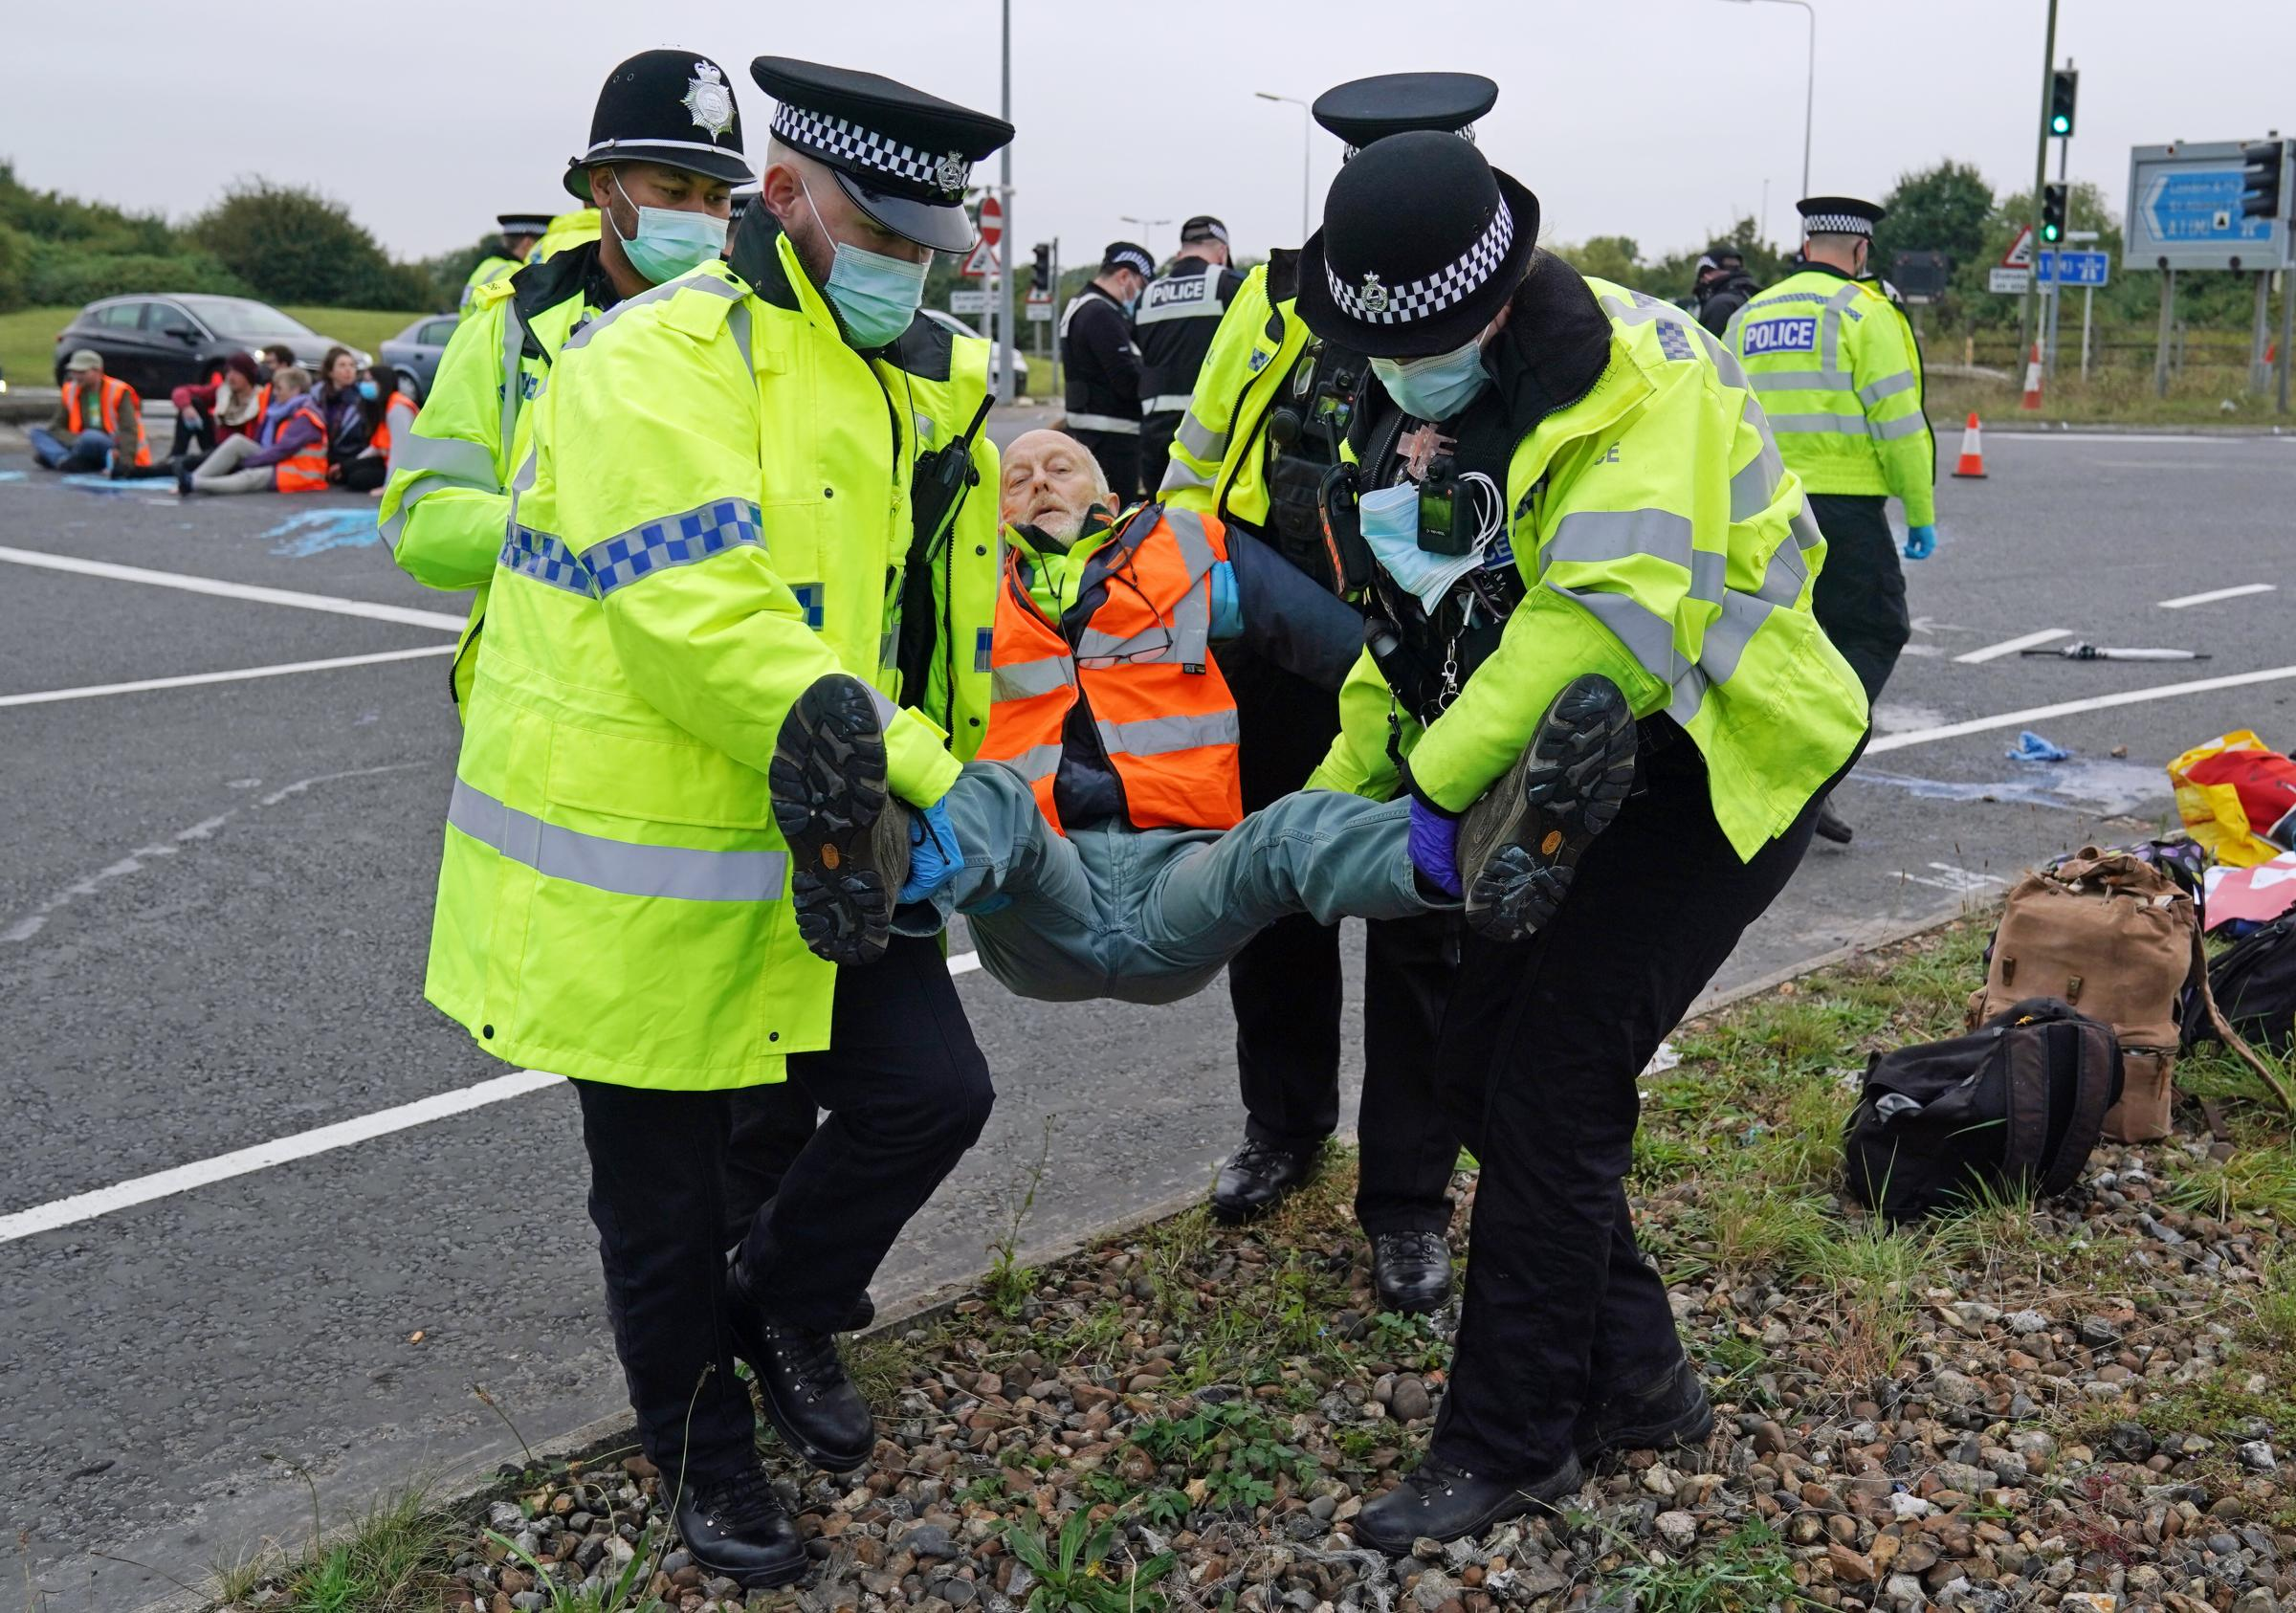 Police have 'robust plans' to deal with Insulate Briatin protesters